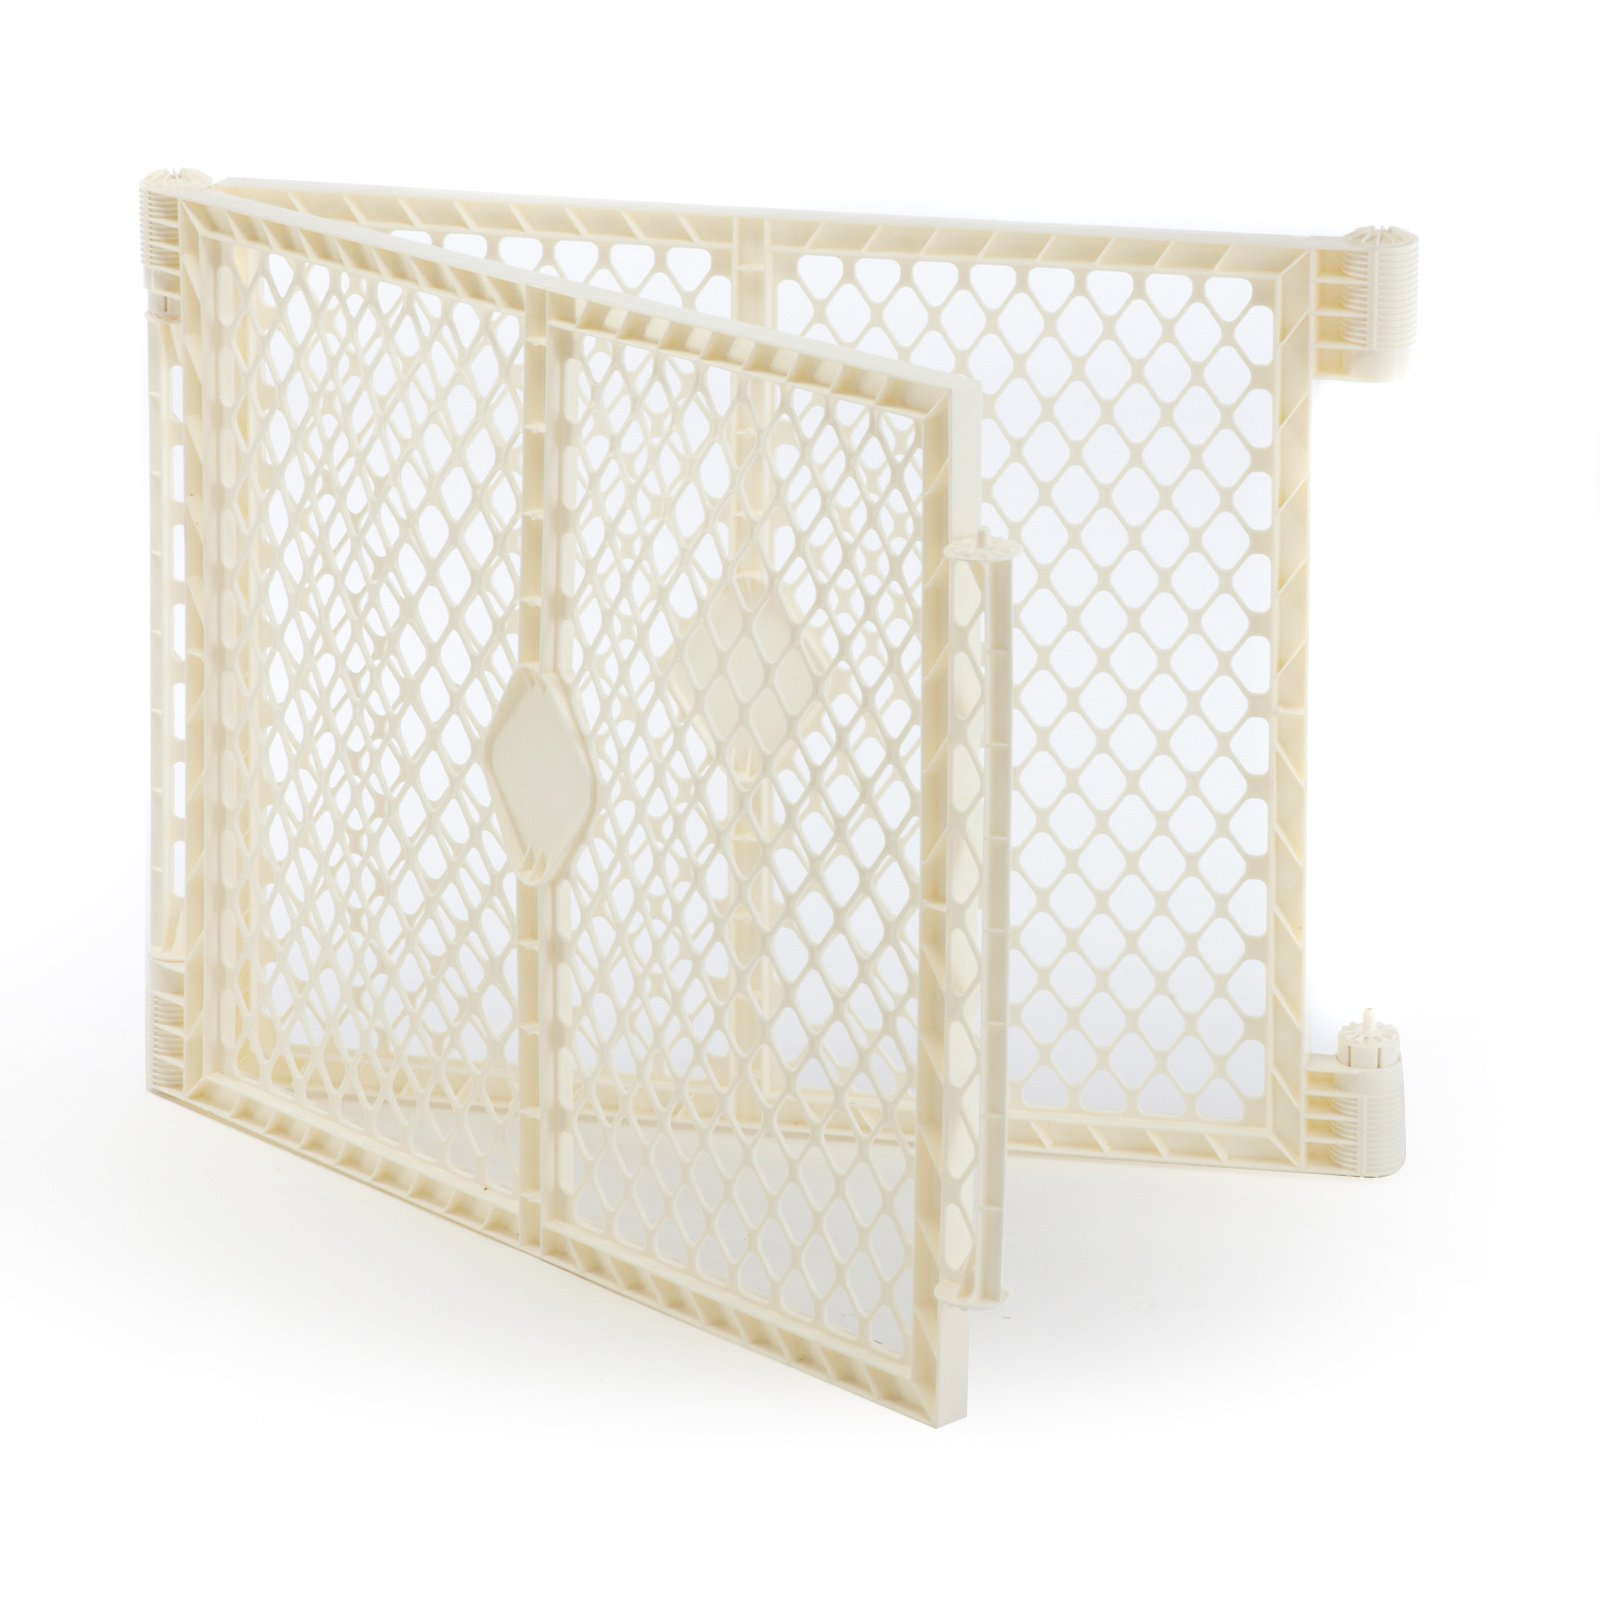 North States Superyard Baby Gate Play Yard Pen 2 Panel Extension Kit Only, Ivory